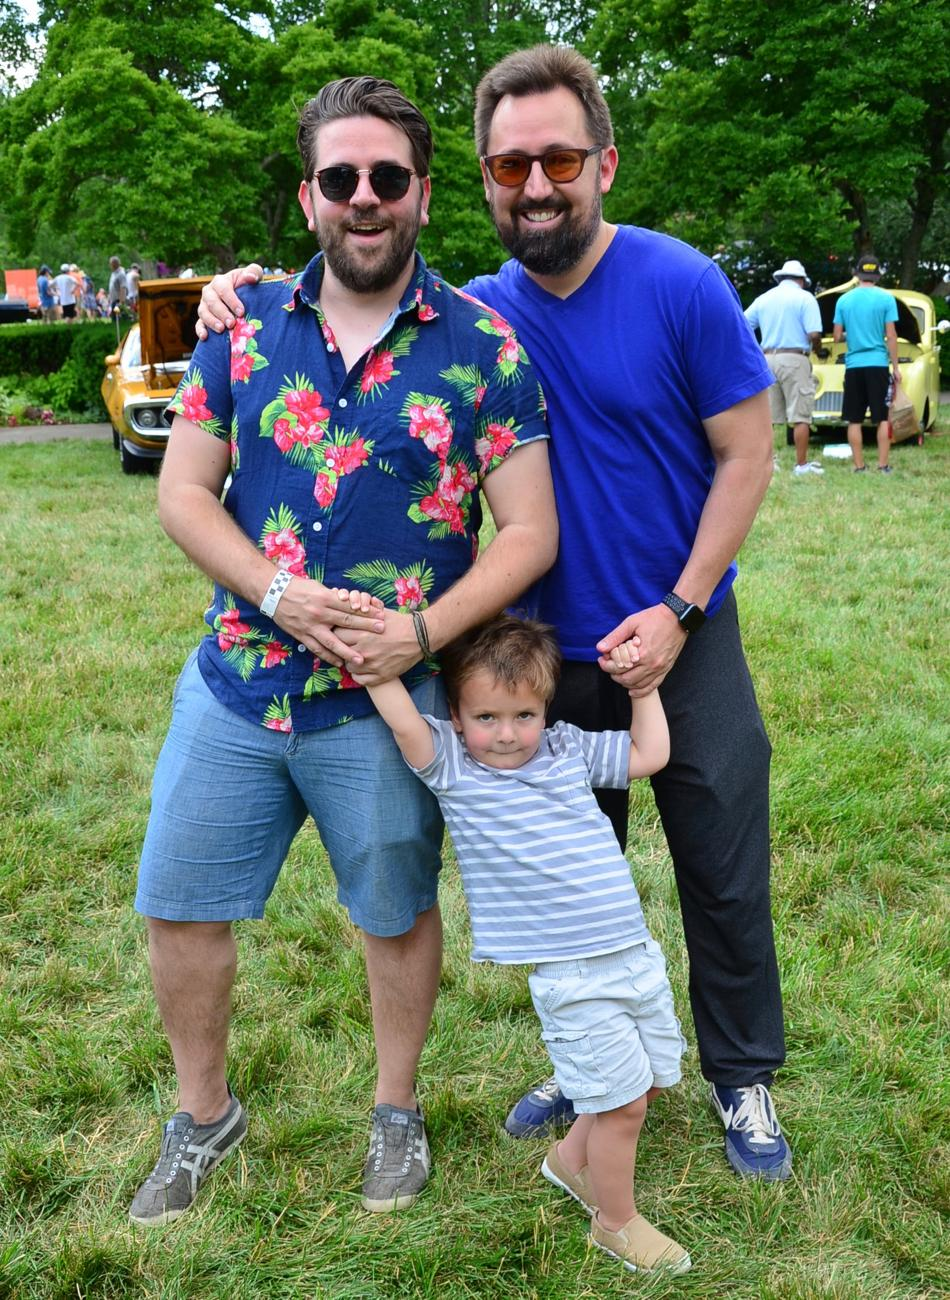 James Parent and his son Bruce with friend Tony Alexander / Image: Leah Zipperstein, Cincinnati Refined // Published: 6.12.17